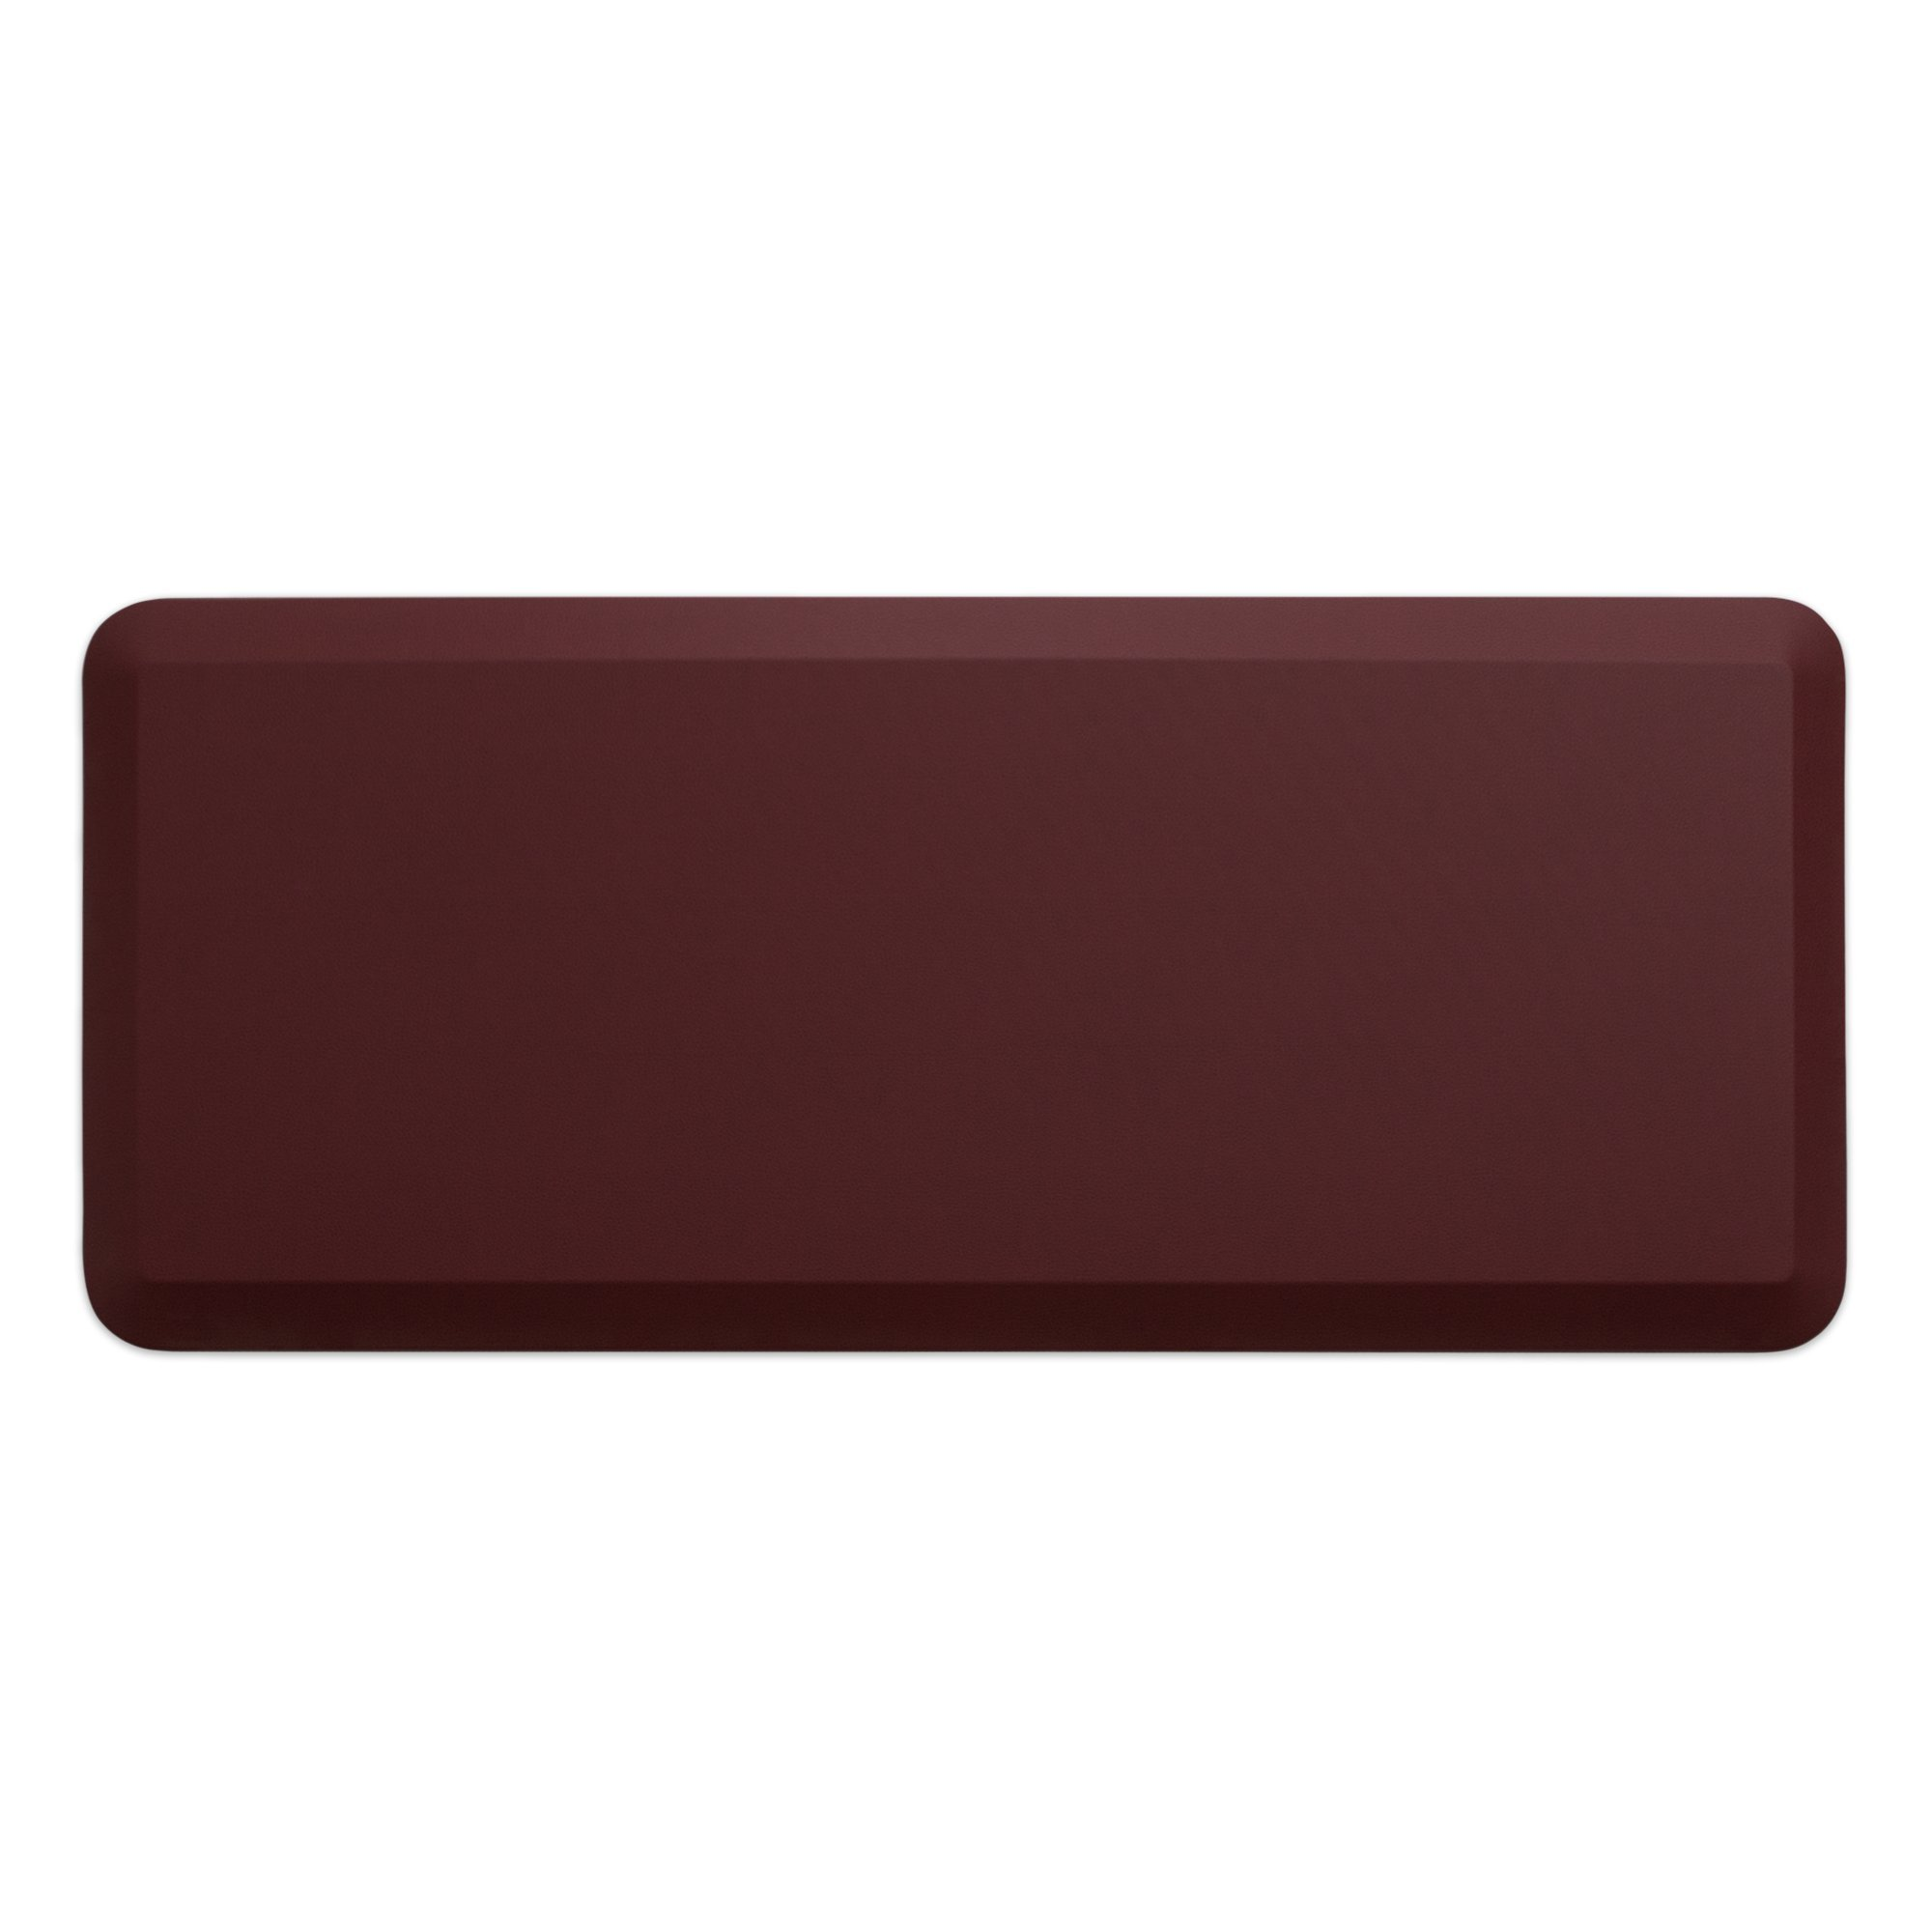 "NewLife by GelPro Anti-Fatigue Designer Comfort Kitchen Floor Mat, 20x48"", Leather Grain Cranberry Stain Resistant Surface with 3/4"" Thick Ergo-foam Core for Health and Wellness"